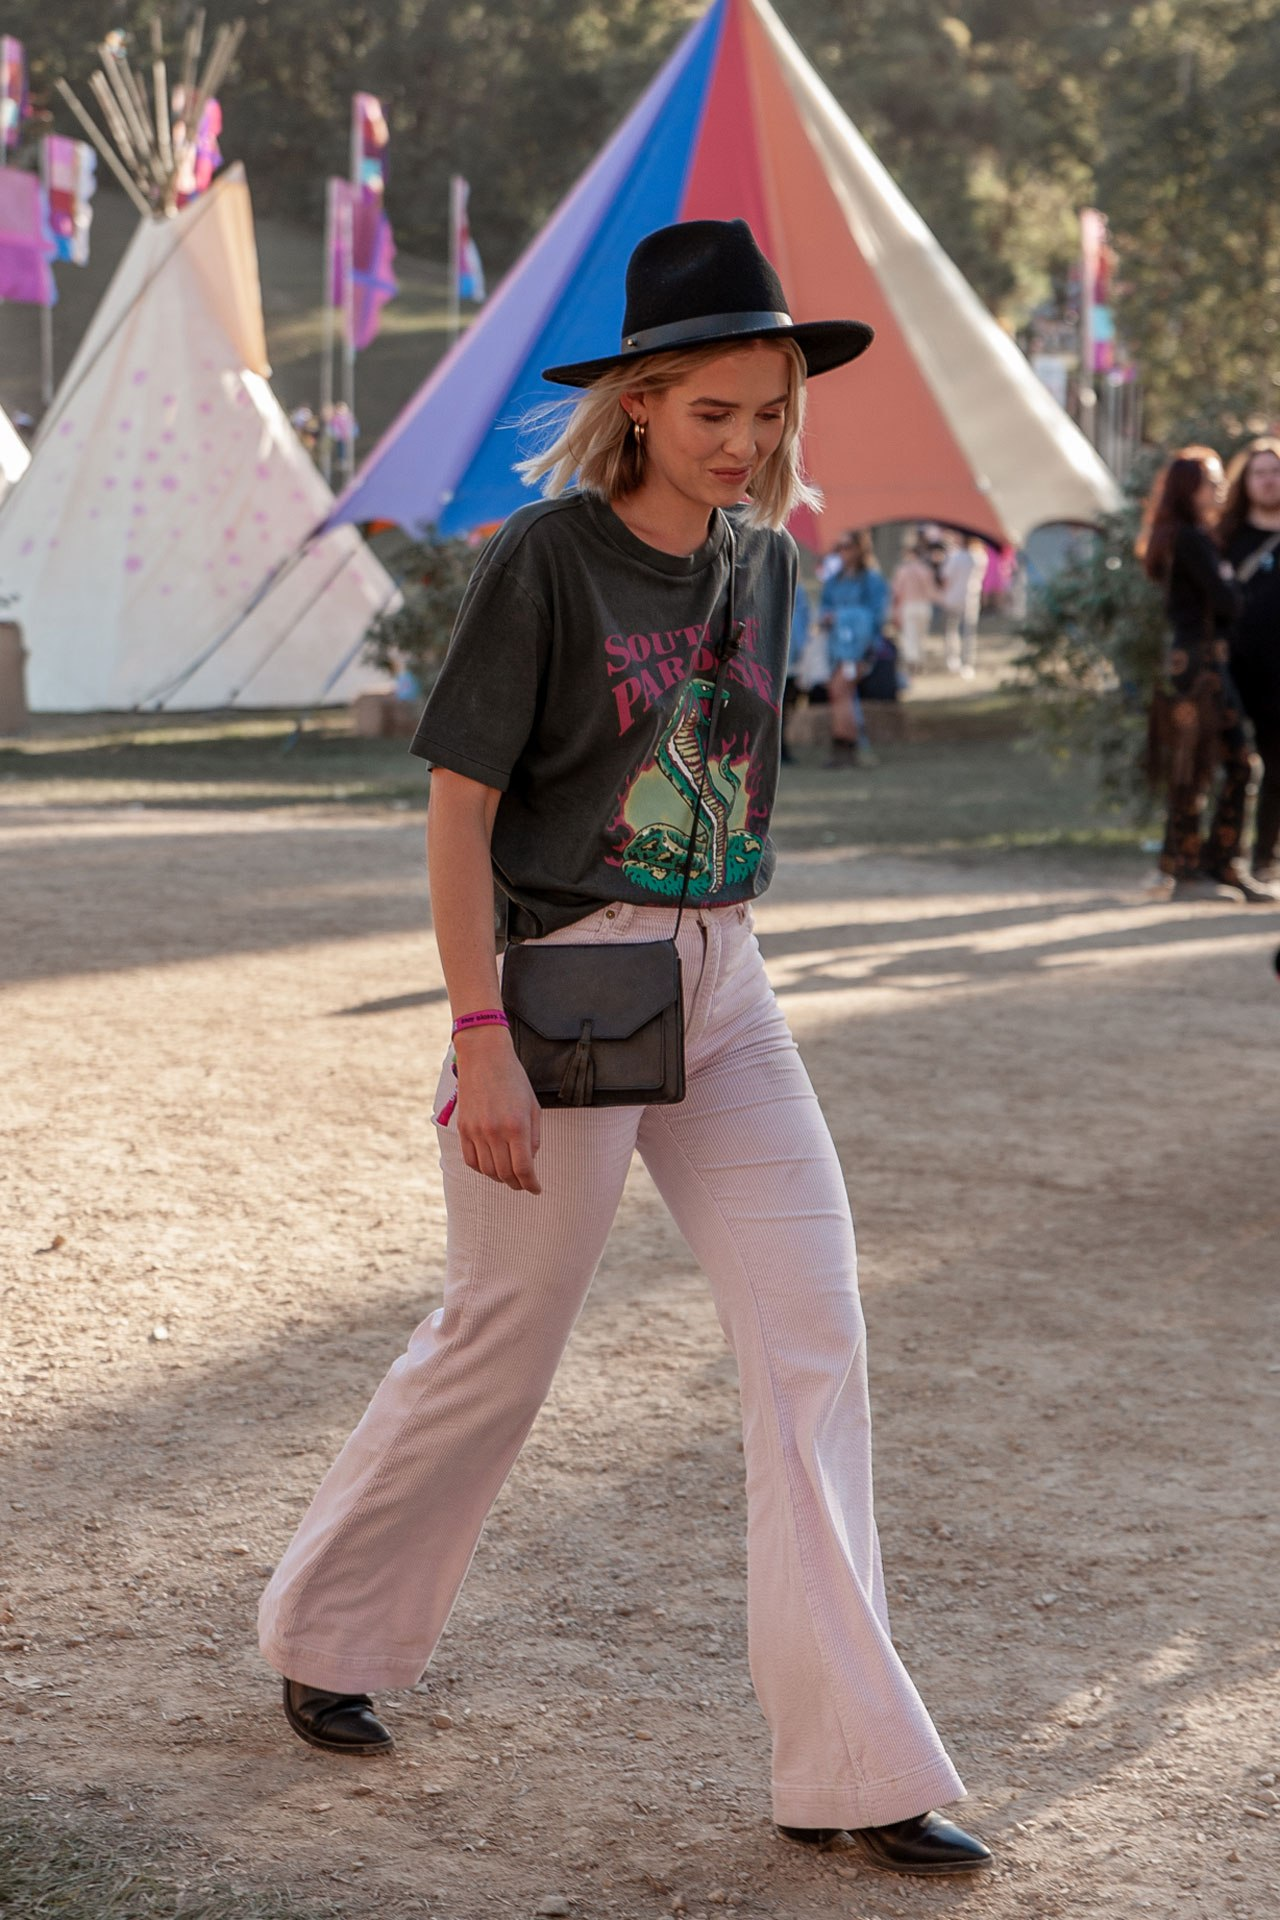 The best street style from Splendour in the Grass 2019